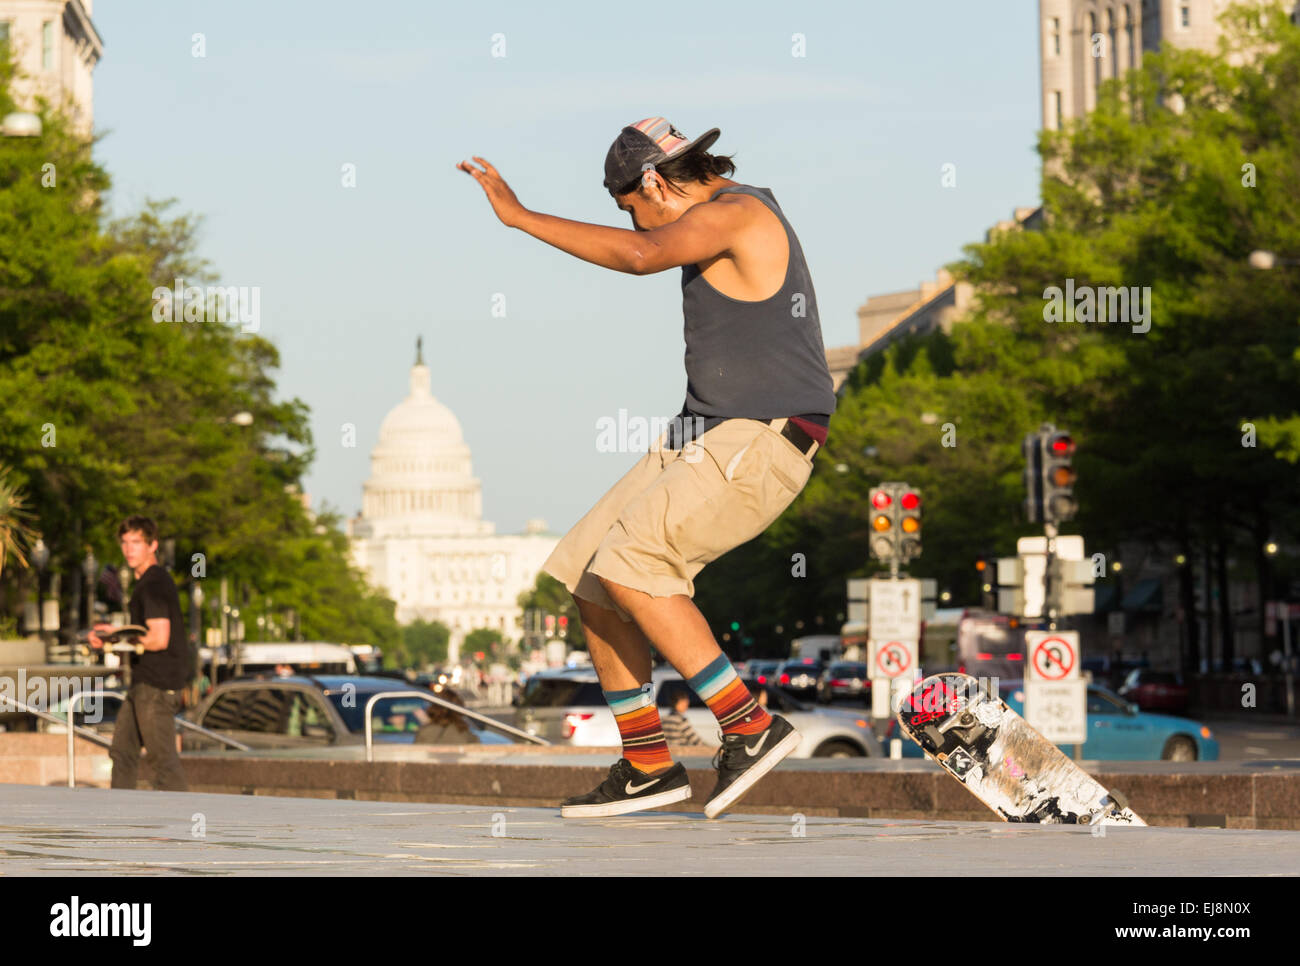 Skateboarder auf Pennsylvania Avenue DC Stockbild